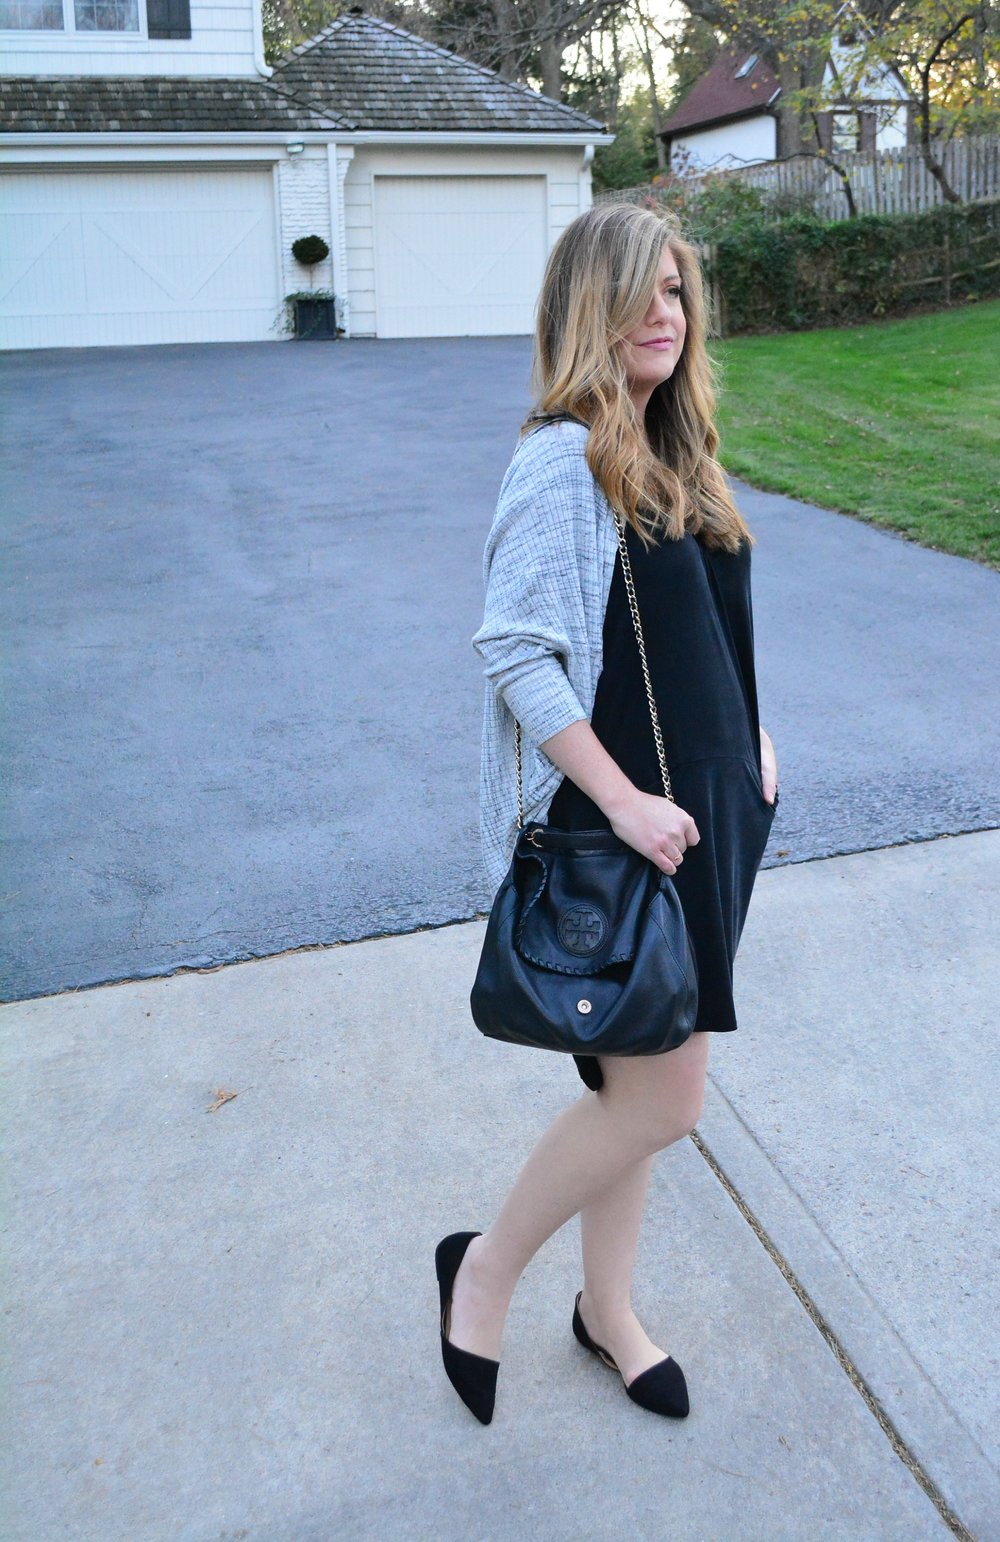 Anthropologie cocoon dress and gray cardigan for fall